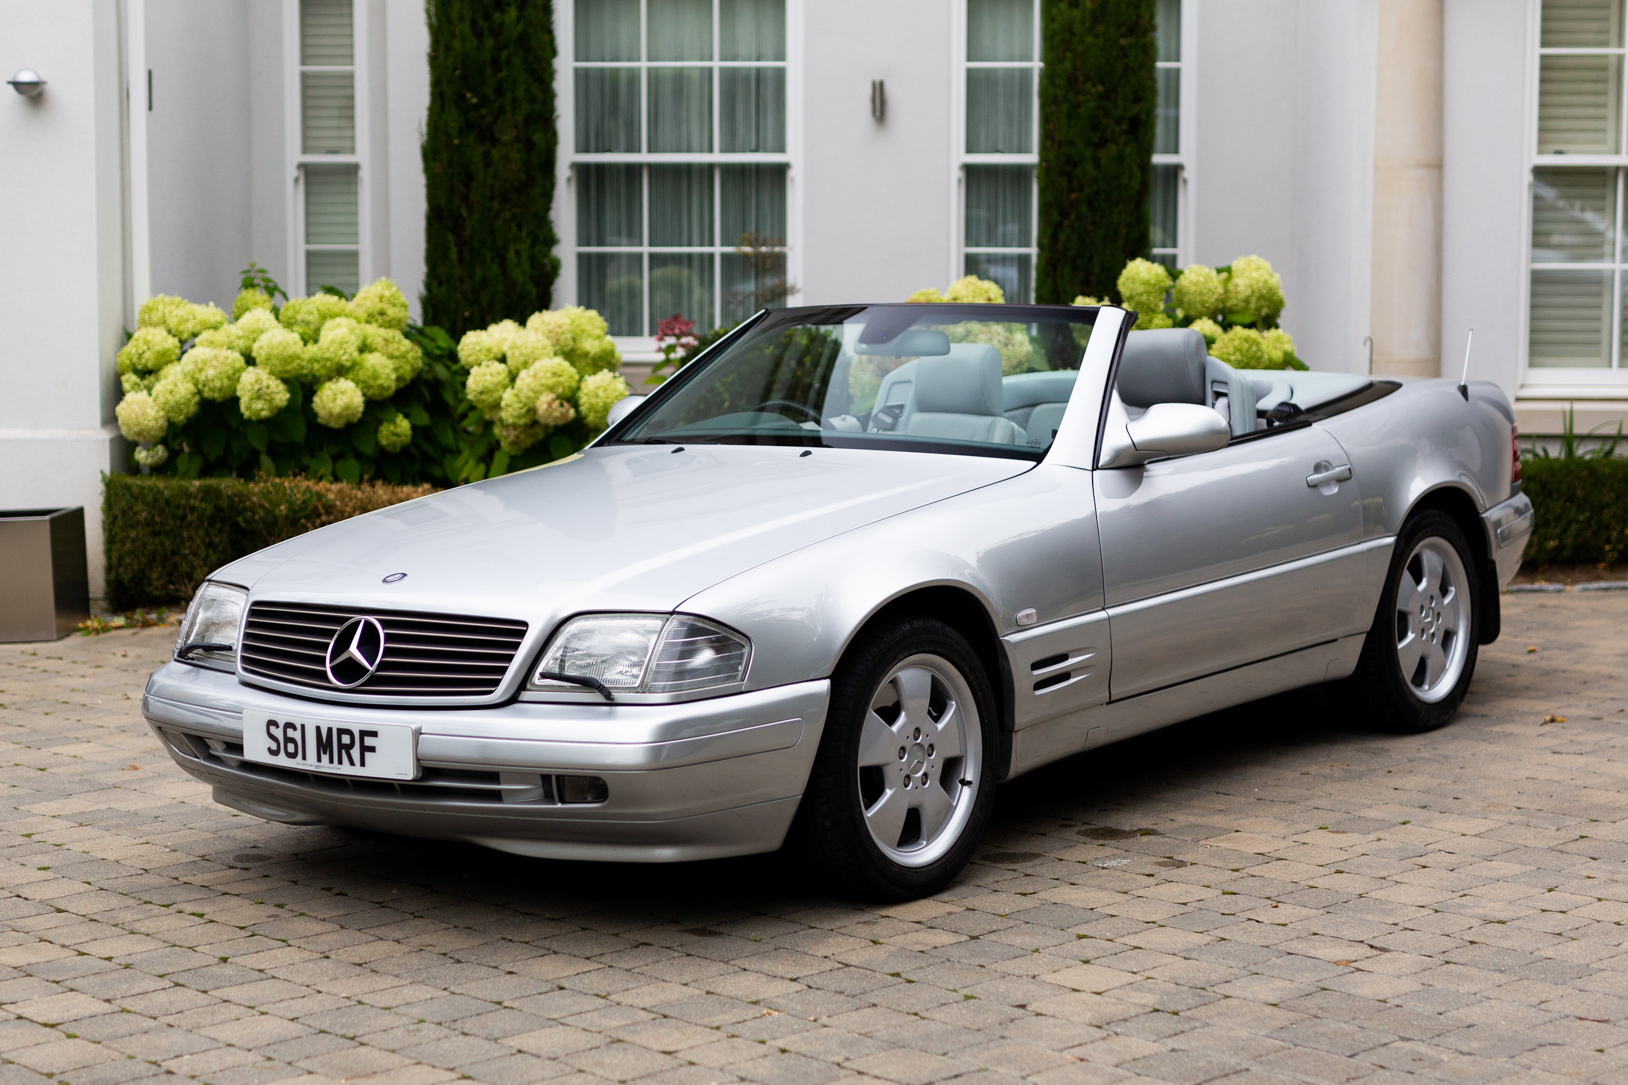 1999 MERCEDES-BENZ (R129) SL320